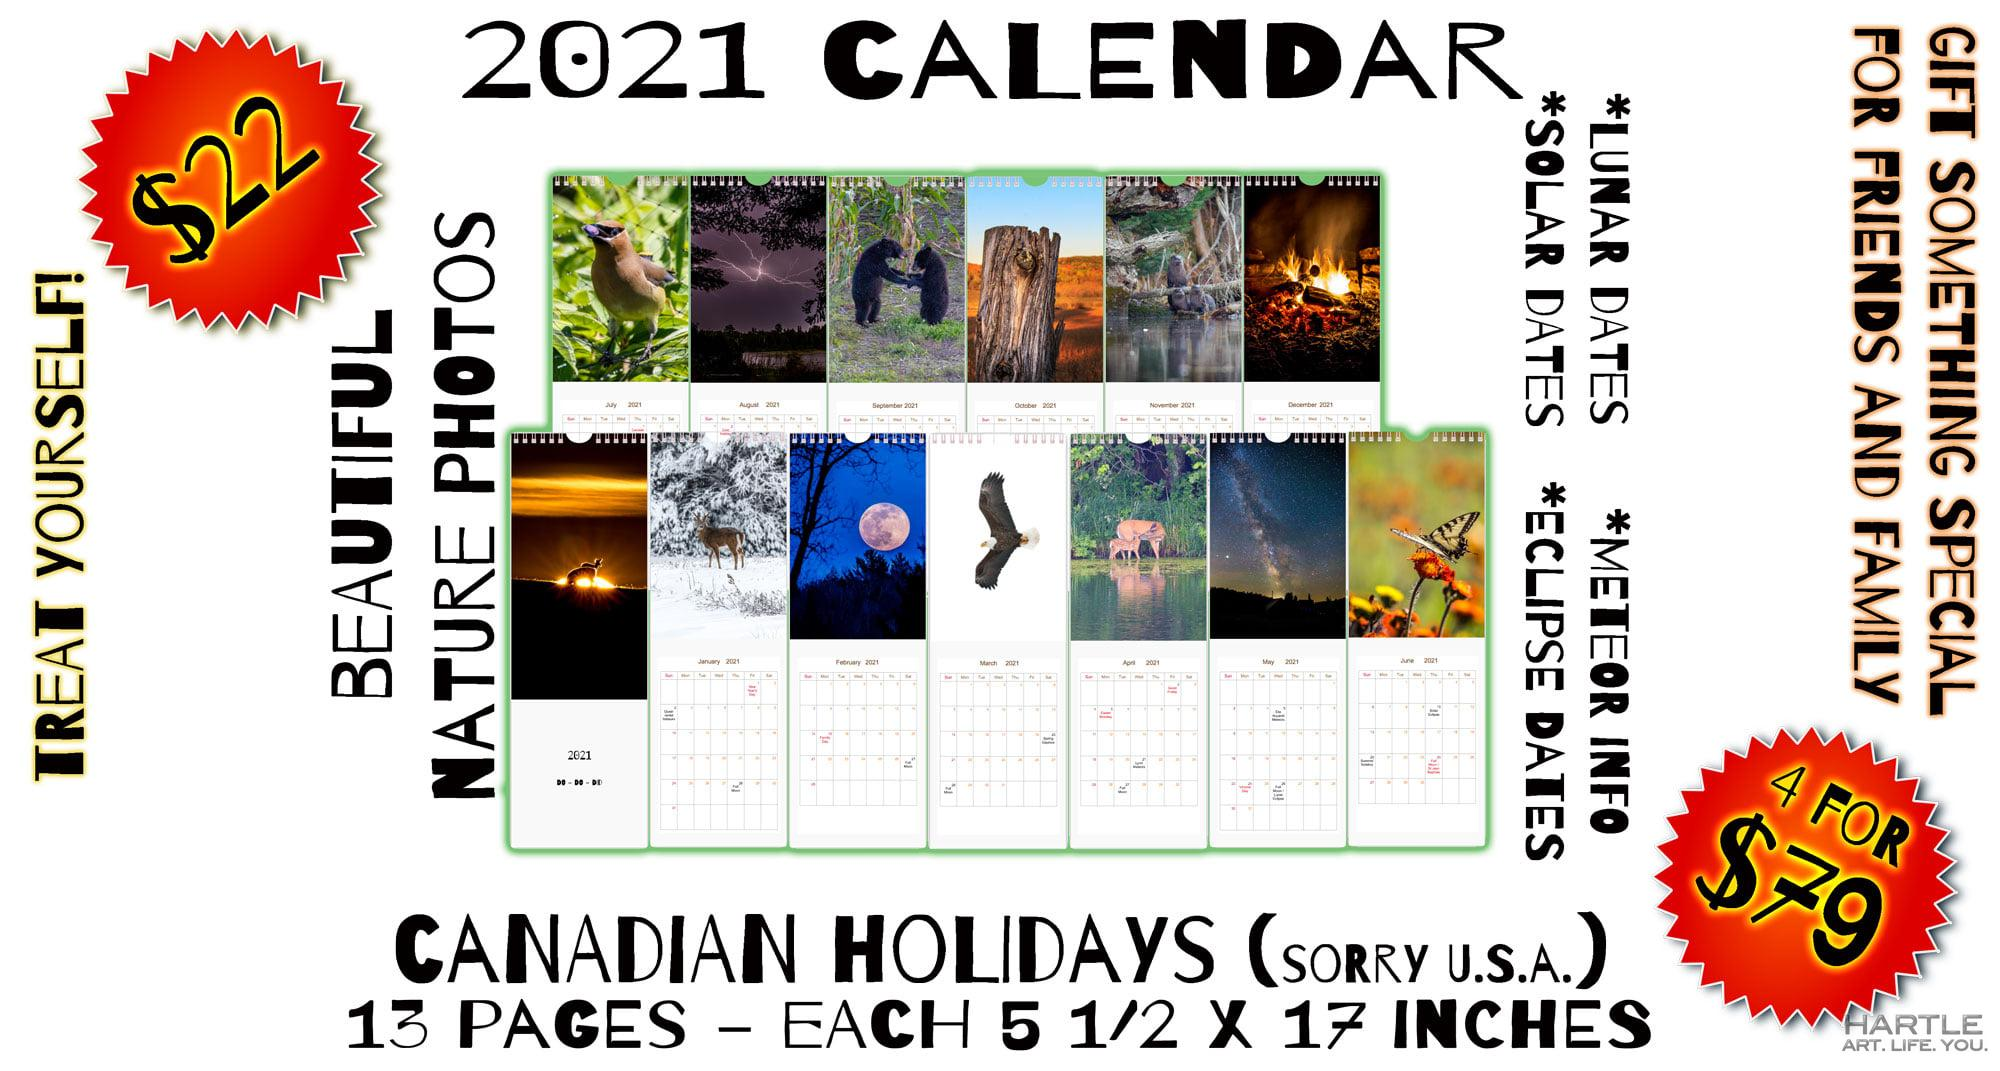 13 of my photos coiled together in an amazing calendar.  You know you want one!